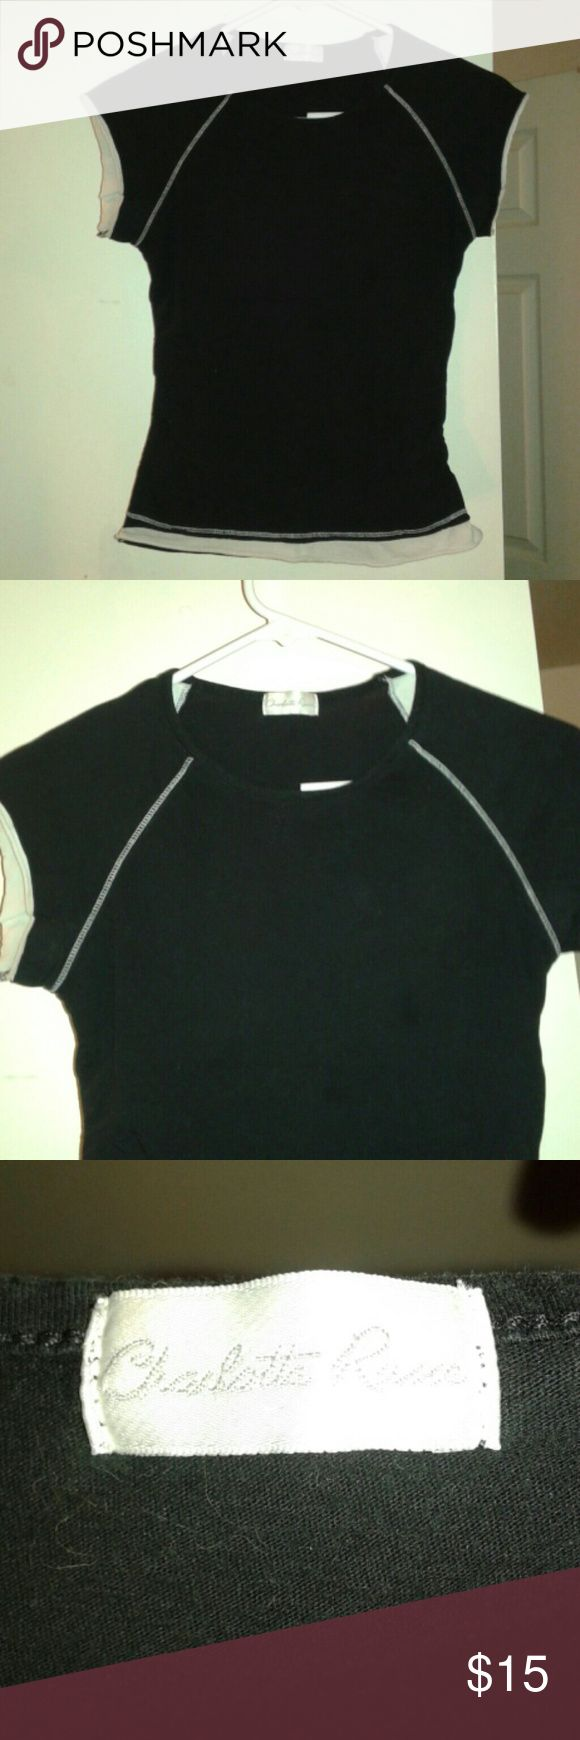 Awesome black and white tee Awesome black and white tee shirt made by Charlotte Russe.  Size small. Super cute to work out in or with jeans! Charlotte Russe Tops Tees - Short Sleeve